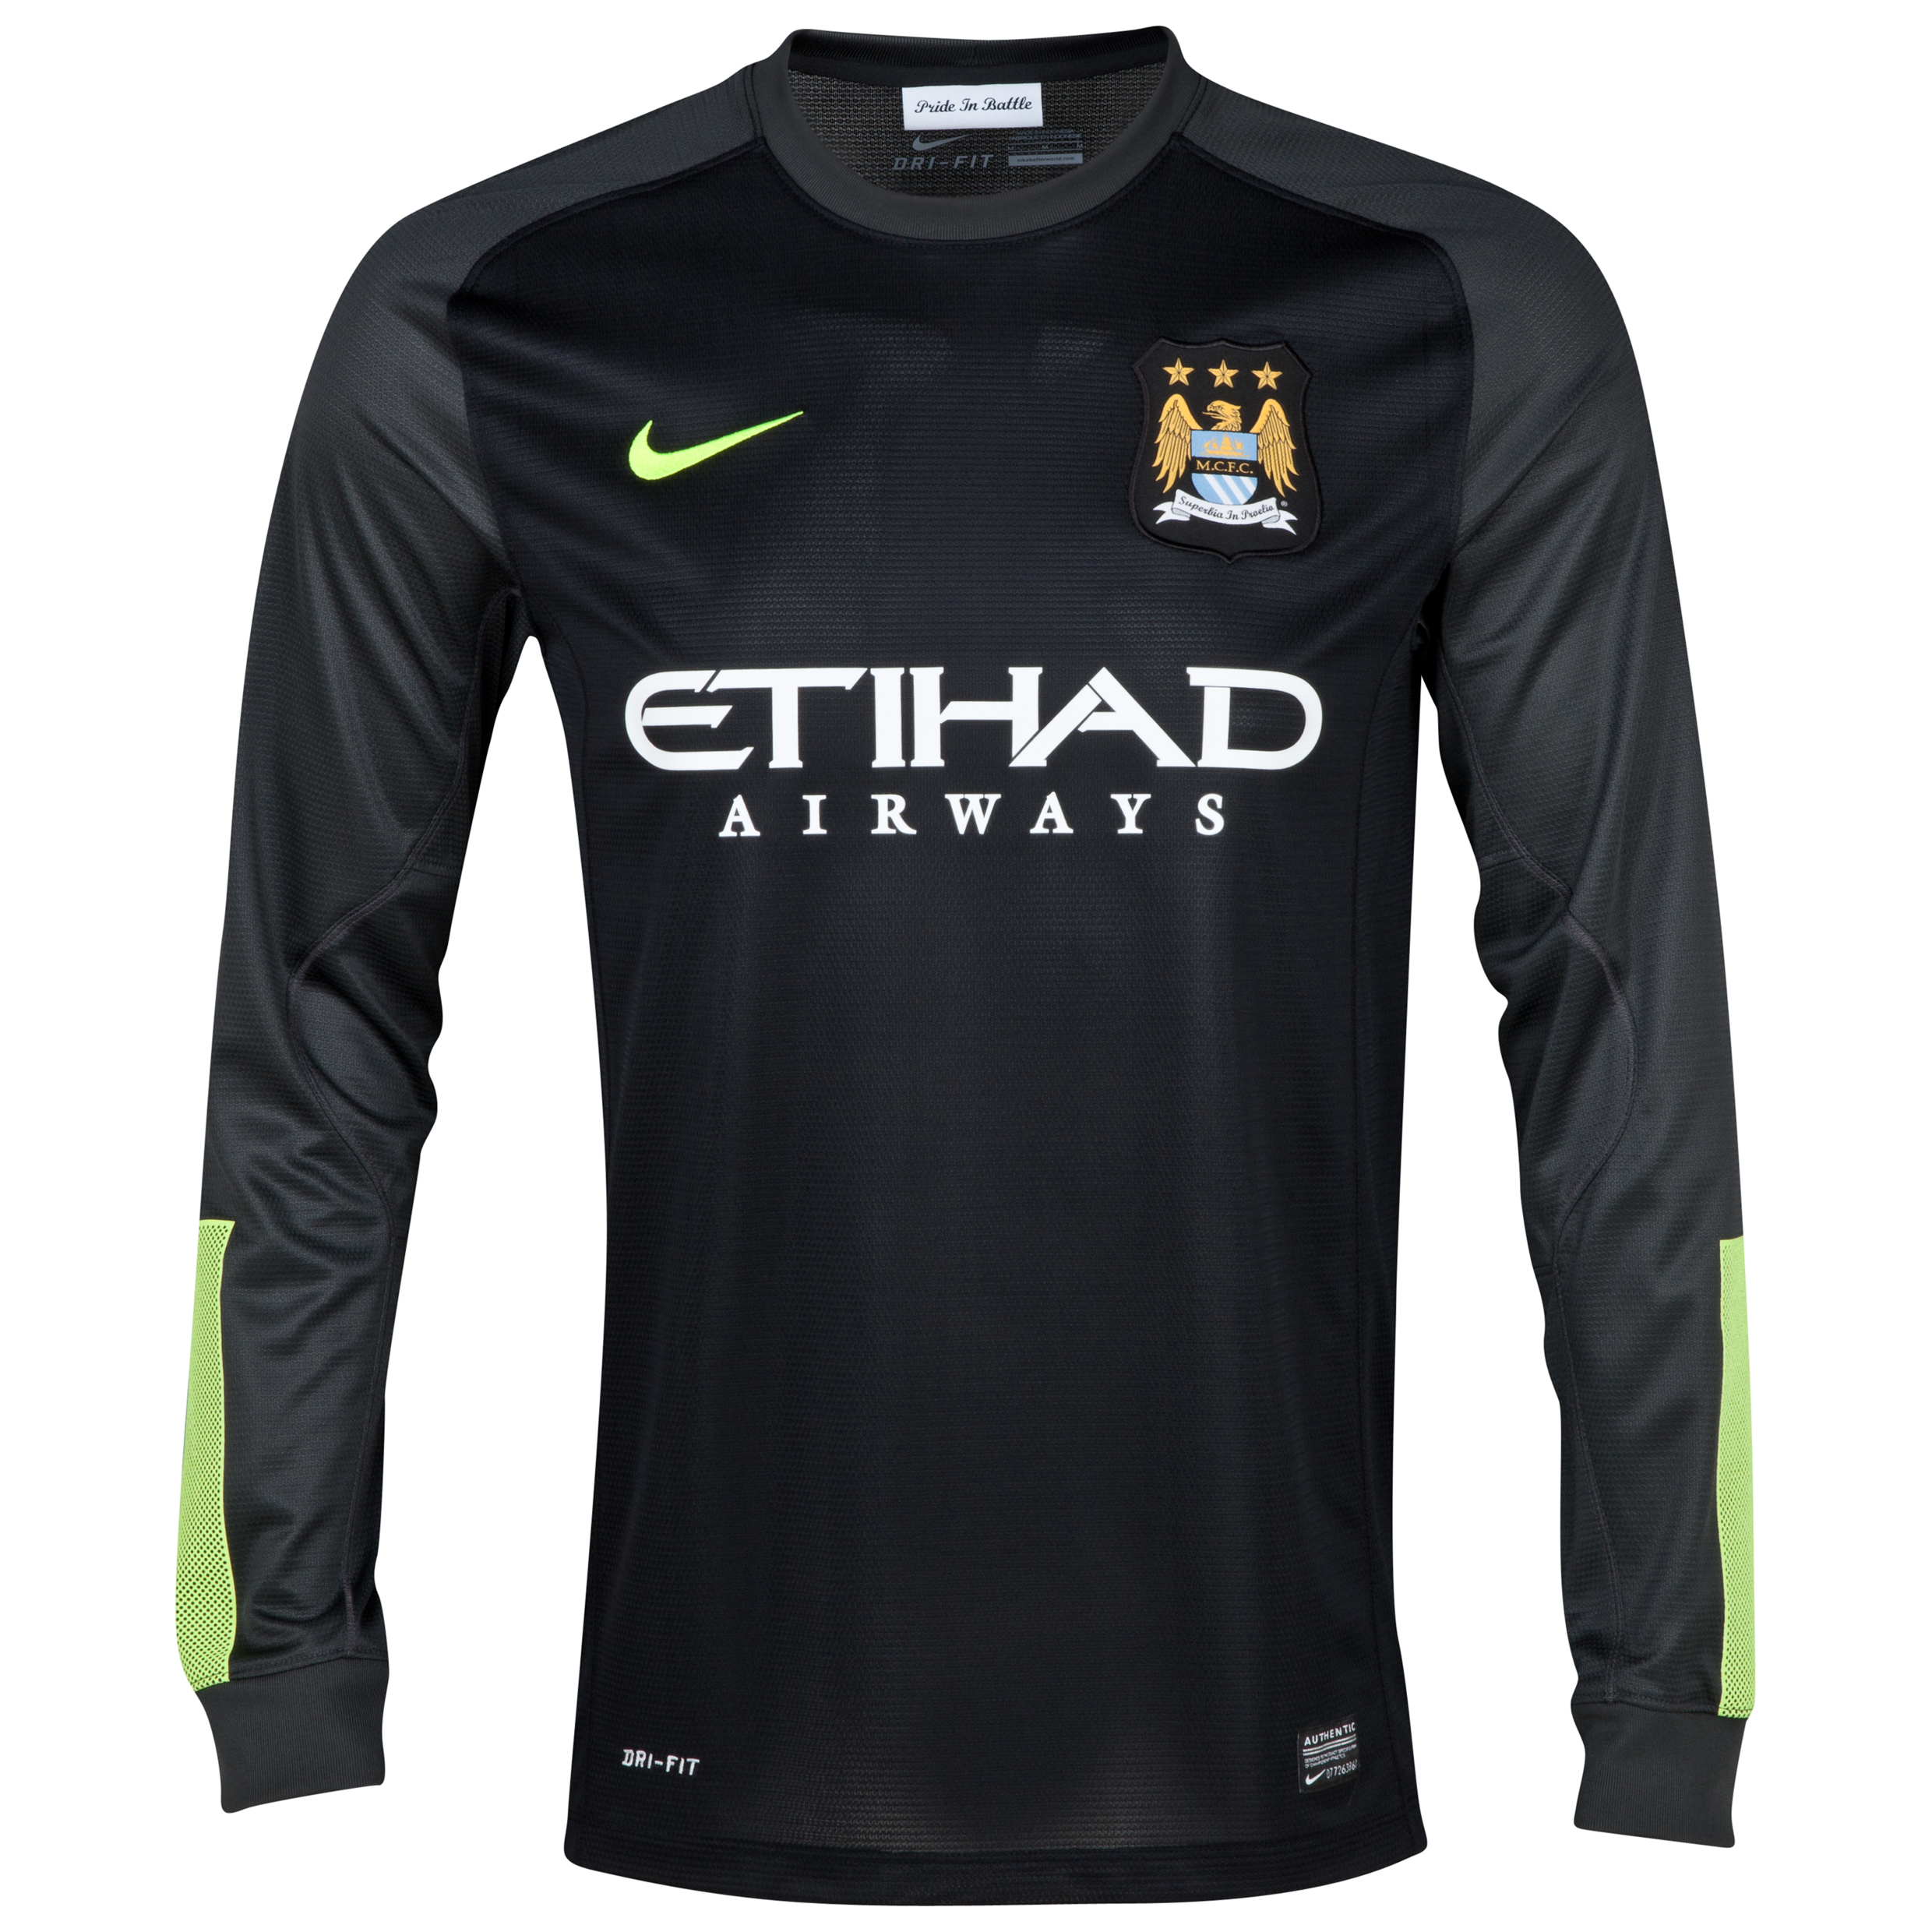 Manchester City Option 2 Goalkeeper Shirt 2013/14 Black